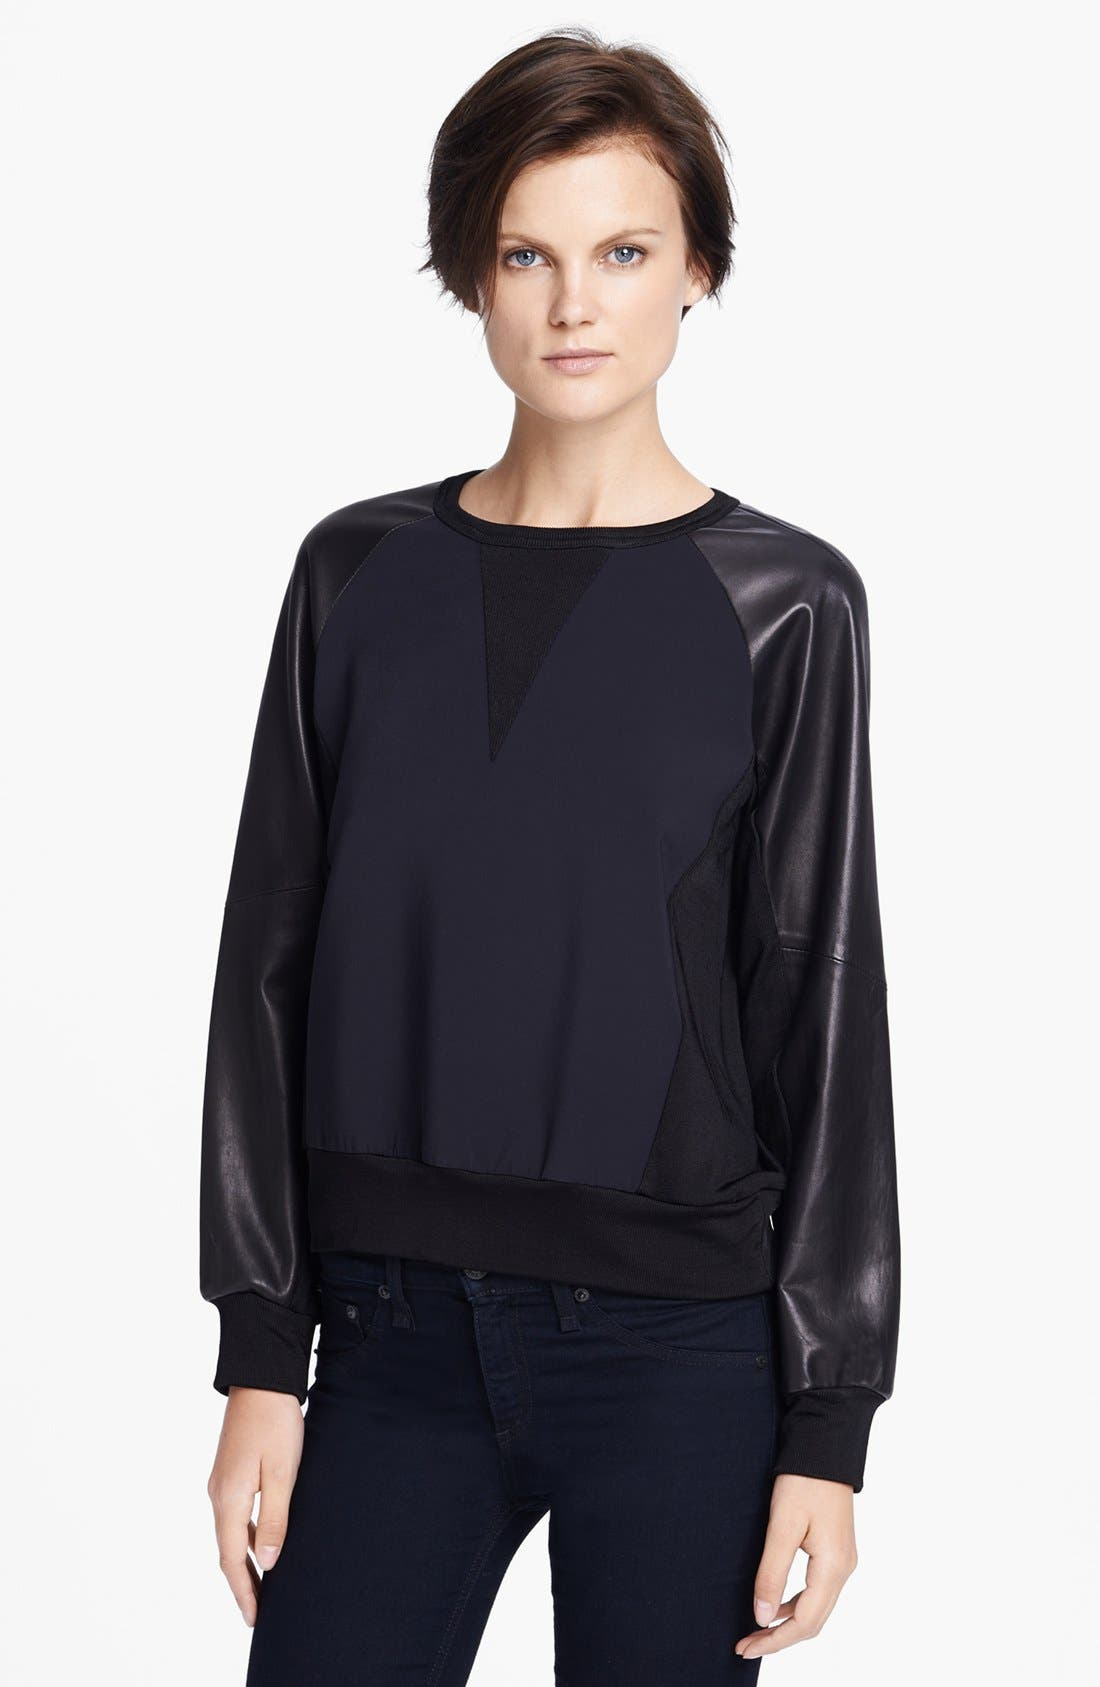 Main Image - rag & bone 'Kent' Leather Sleeve Sweatshirt